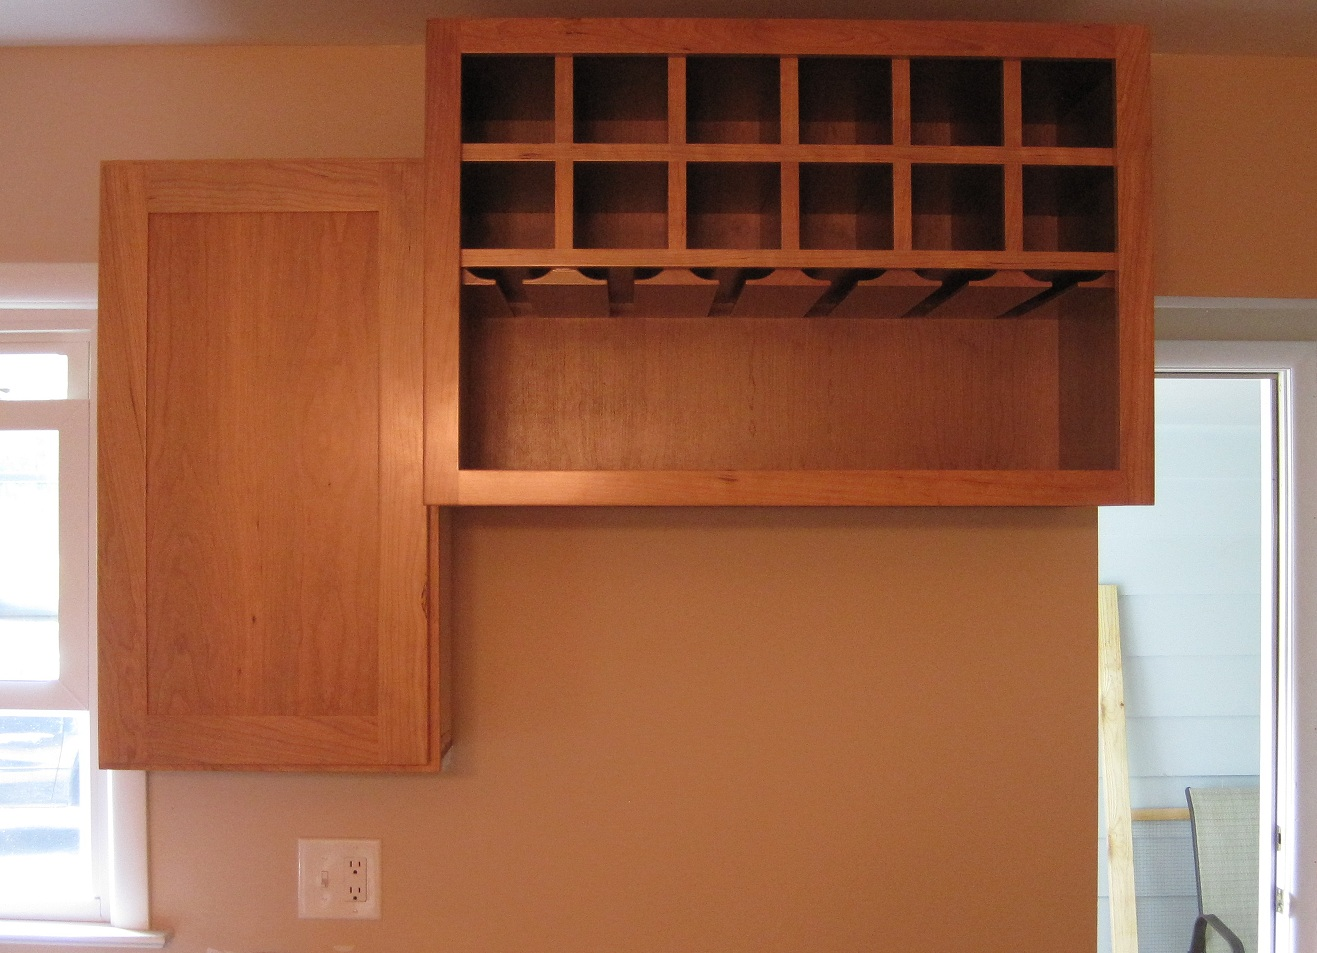 built in wine rack kitchen cabinets unclog drain 301 moved permanently